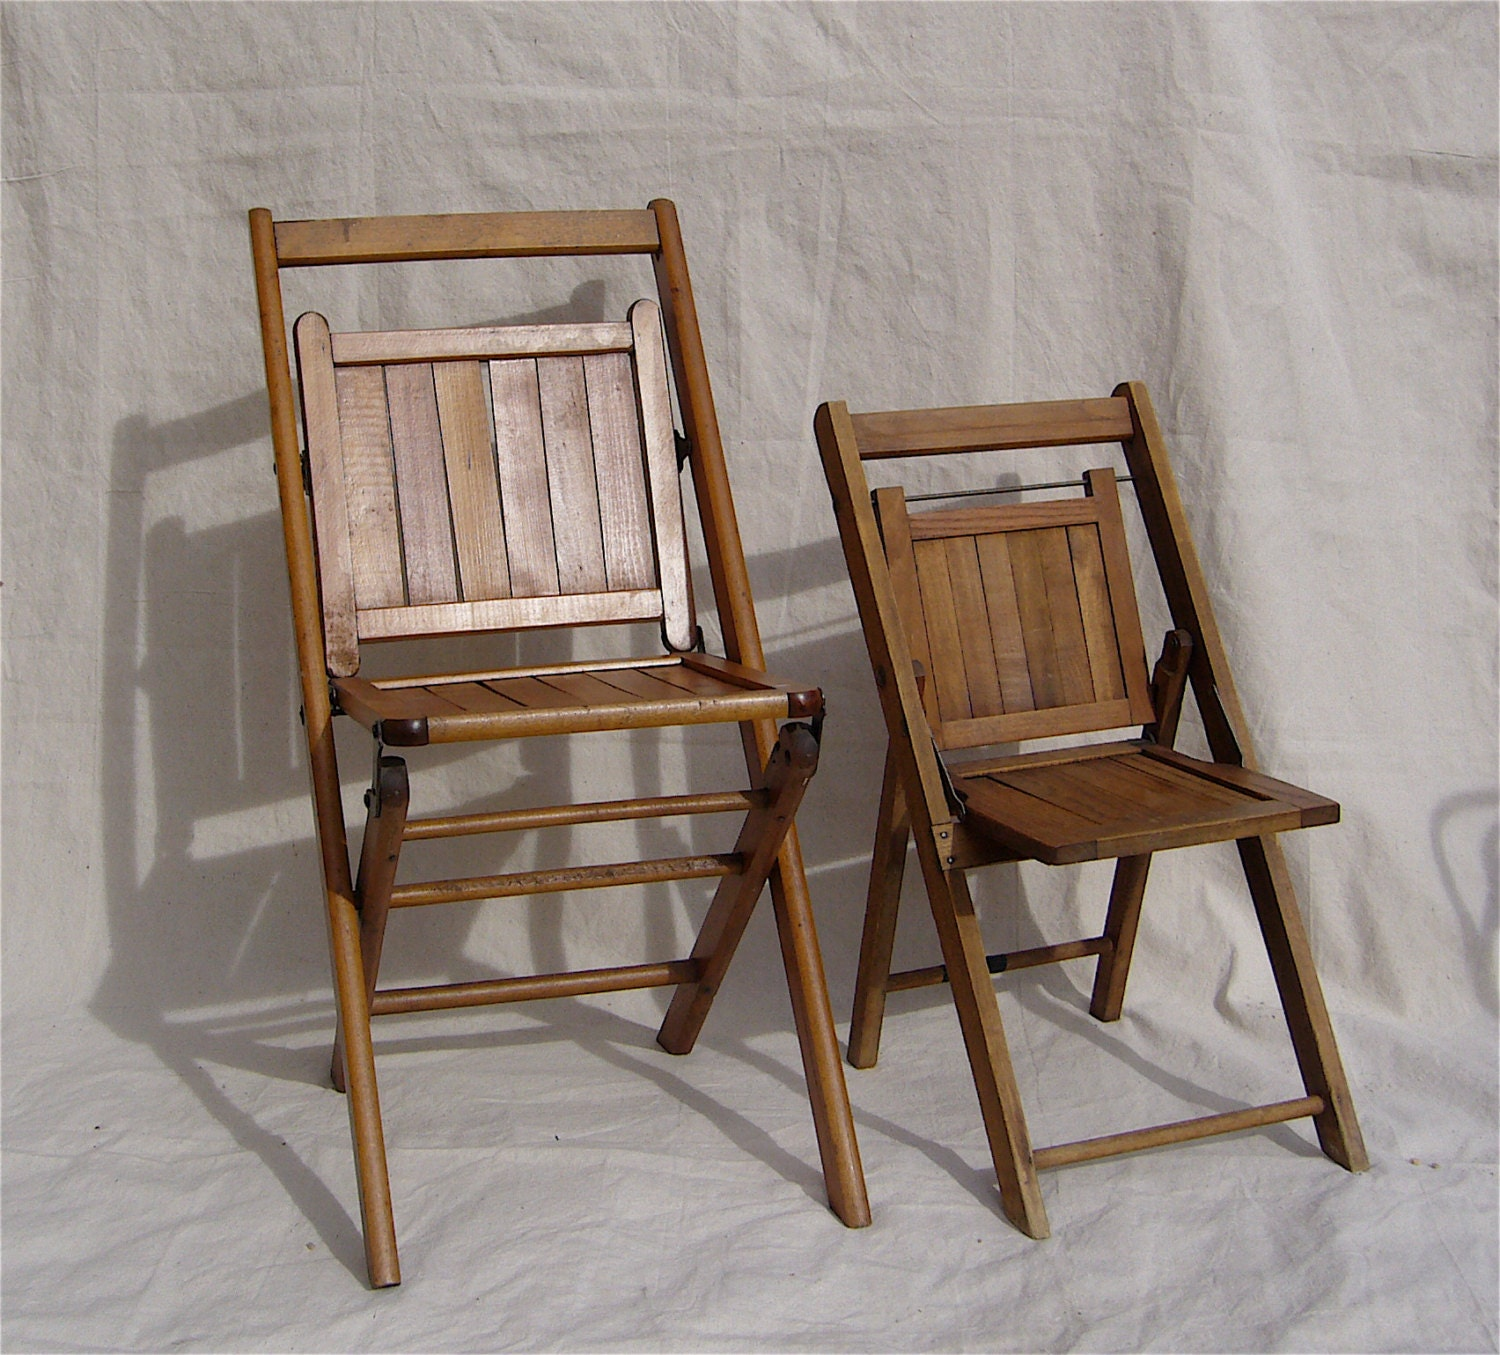 antique folding chairs wood slat pair adult child sized c